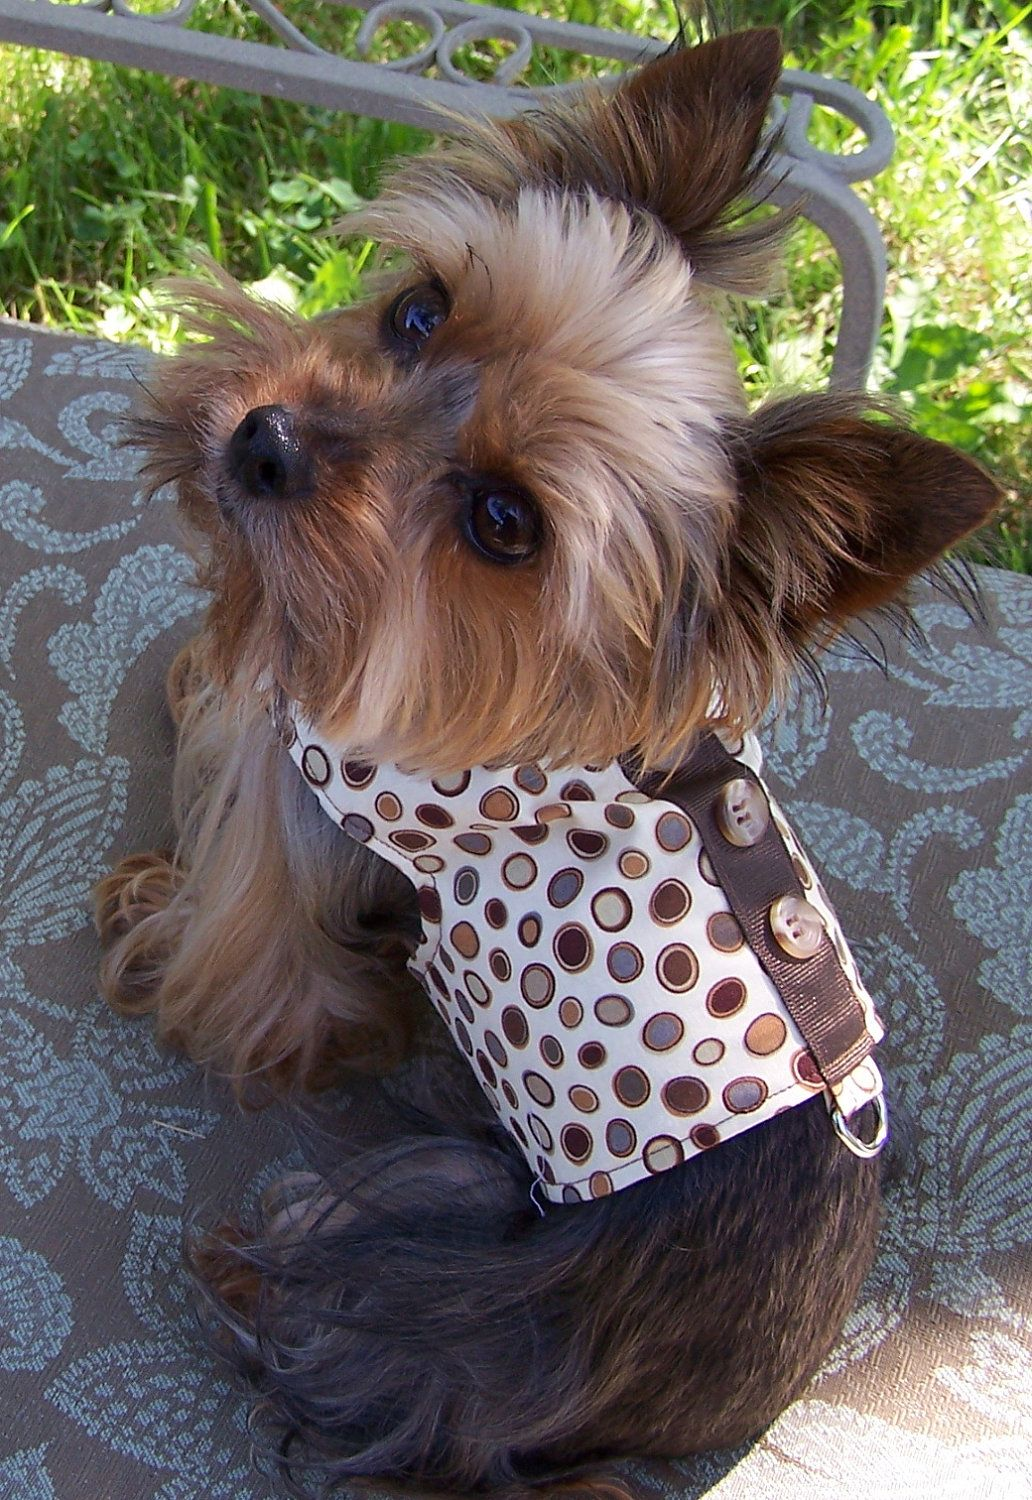 Dog Harness Vest In Pebble print with bow tie Size X-Small for toy